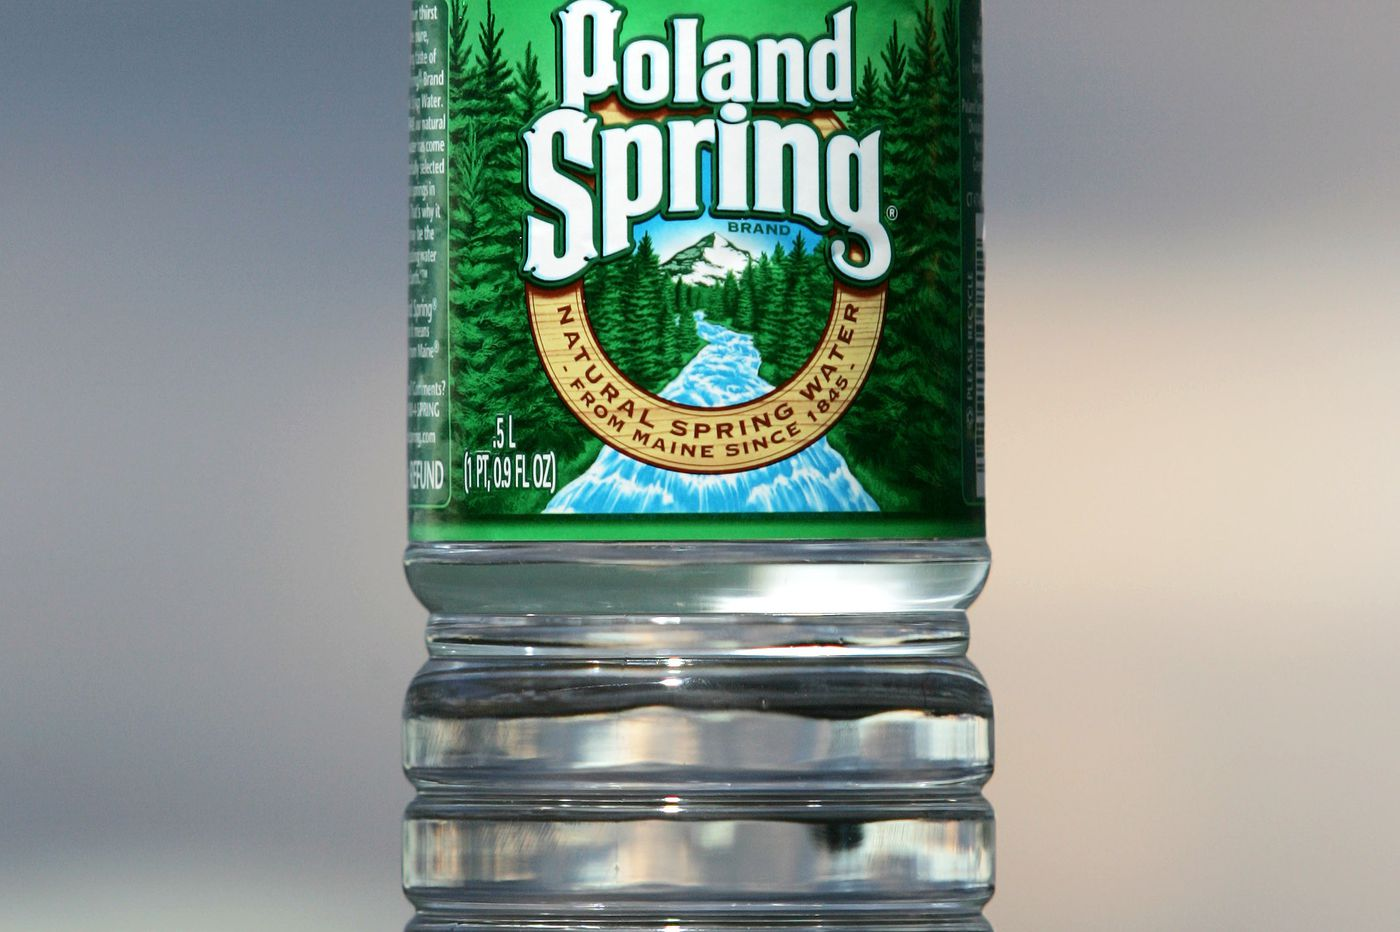 Poland Spring to use 100% recycled plastic for bottles